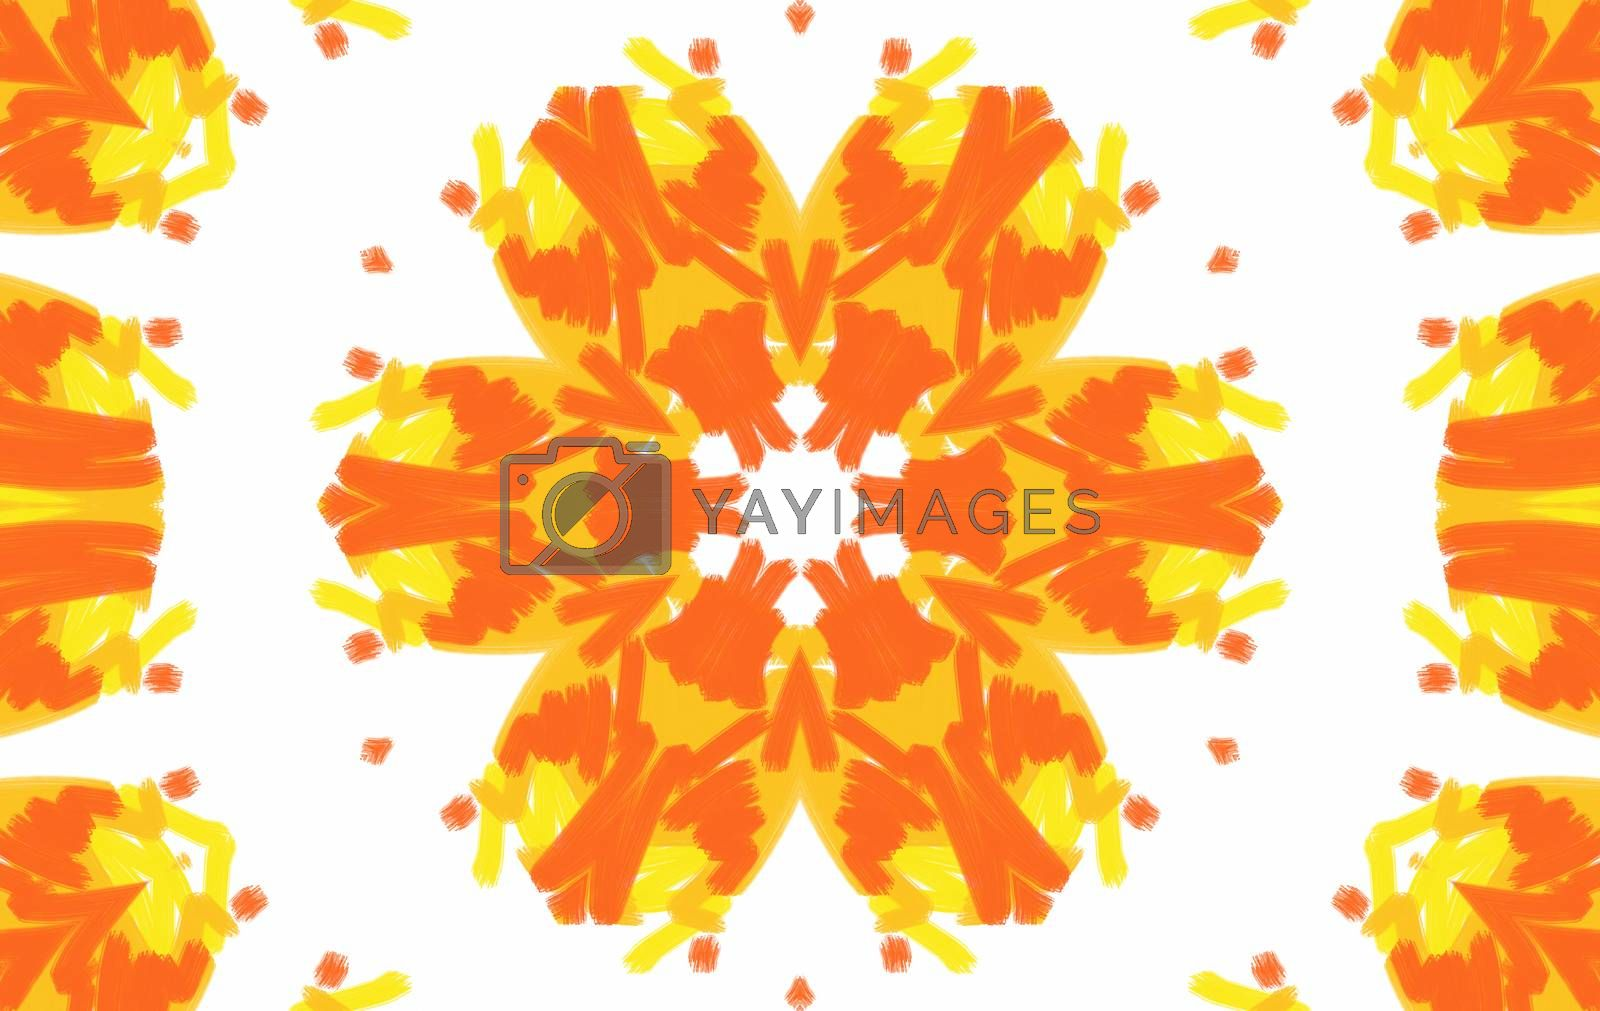 Abstract background with bright color pattern on white background